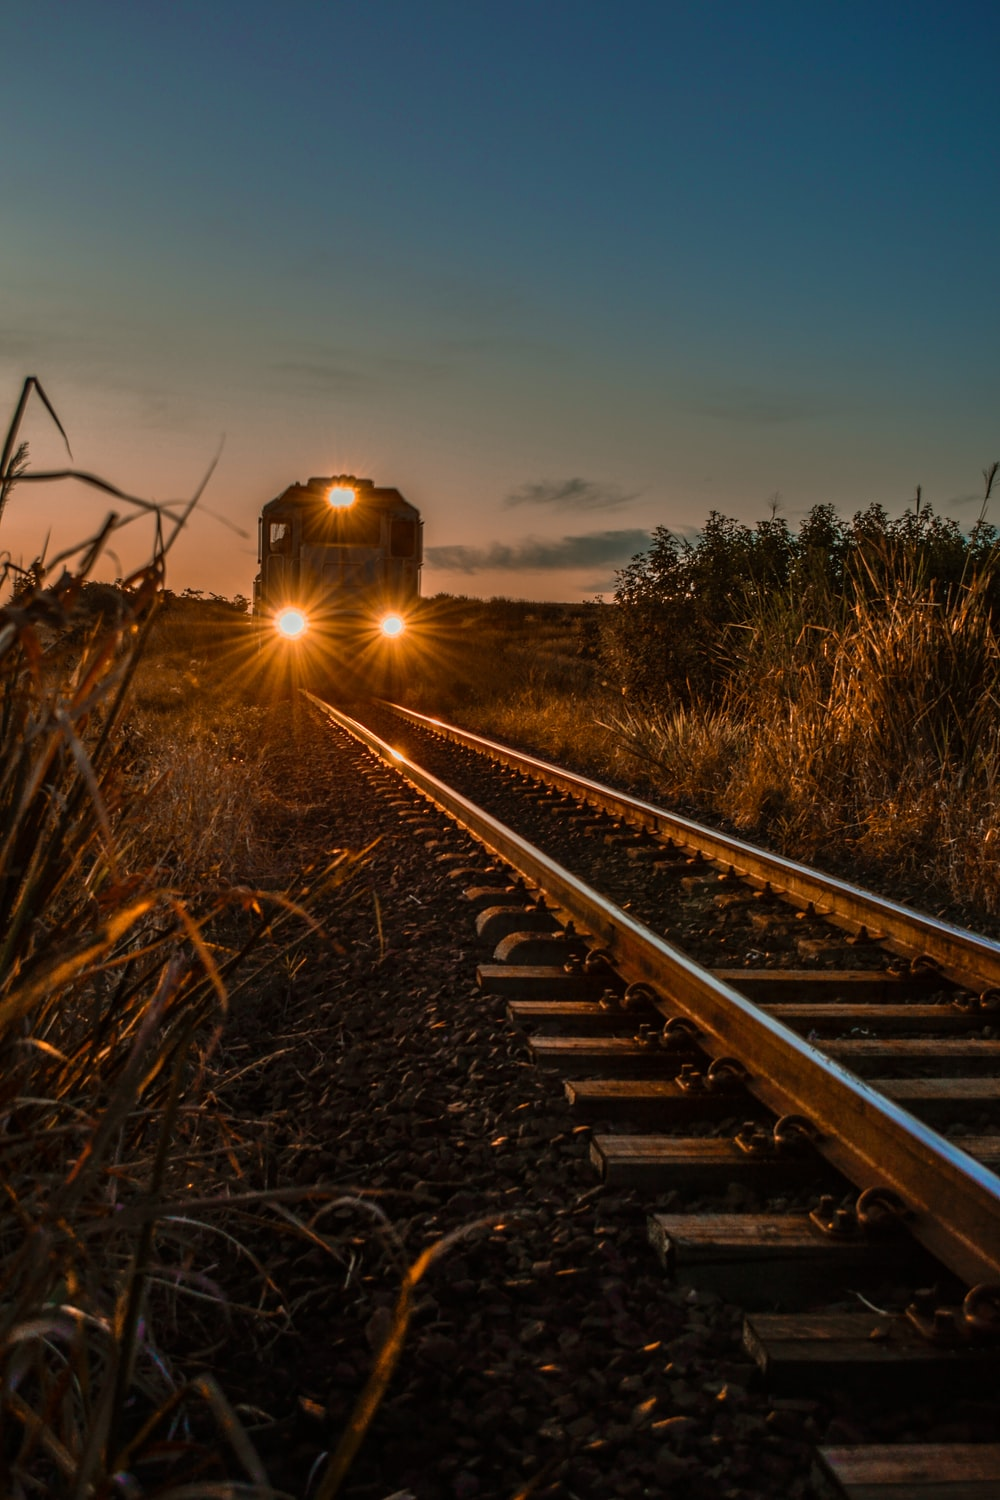 train on rail during sunset